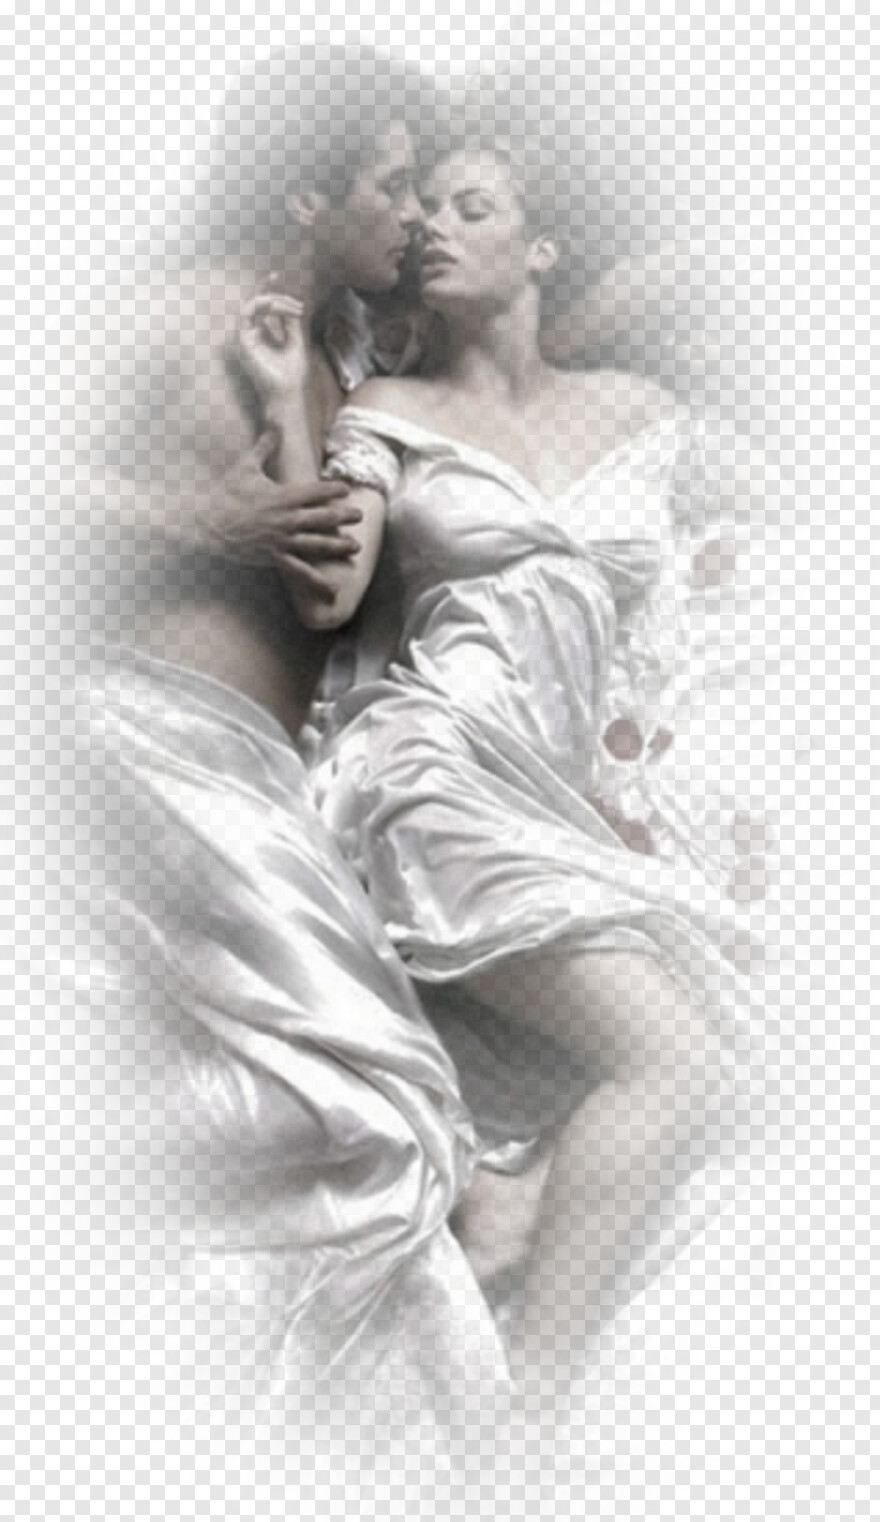 Romantic Couple Sexy Couple Images Free Download Png Download 318x550 6791181 Png Image Pngjoy